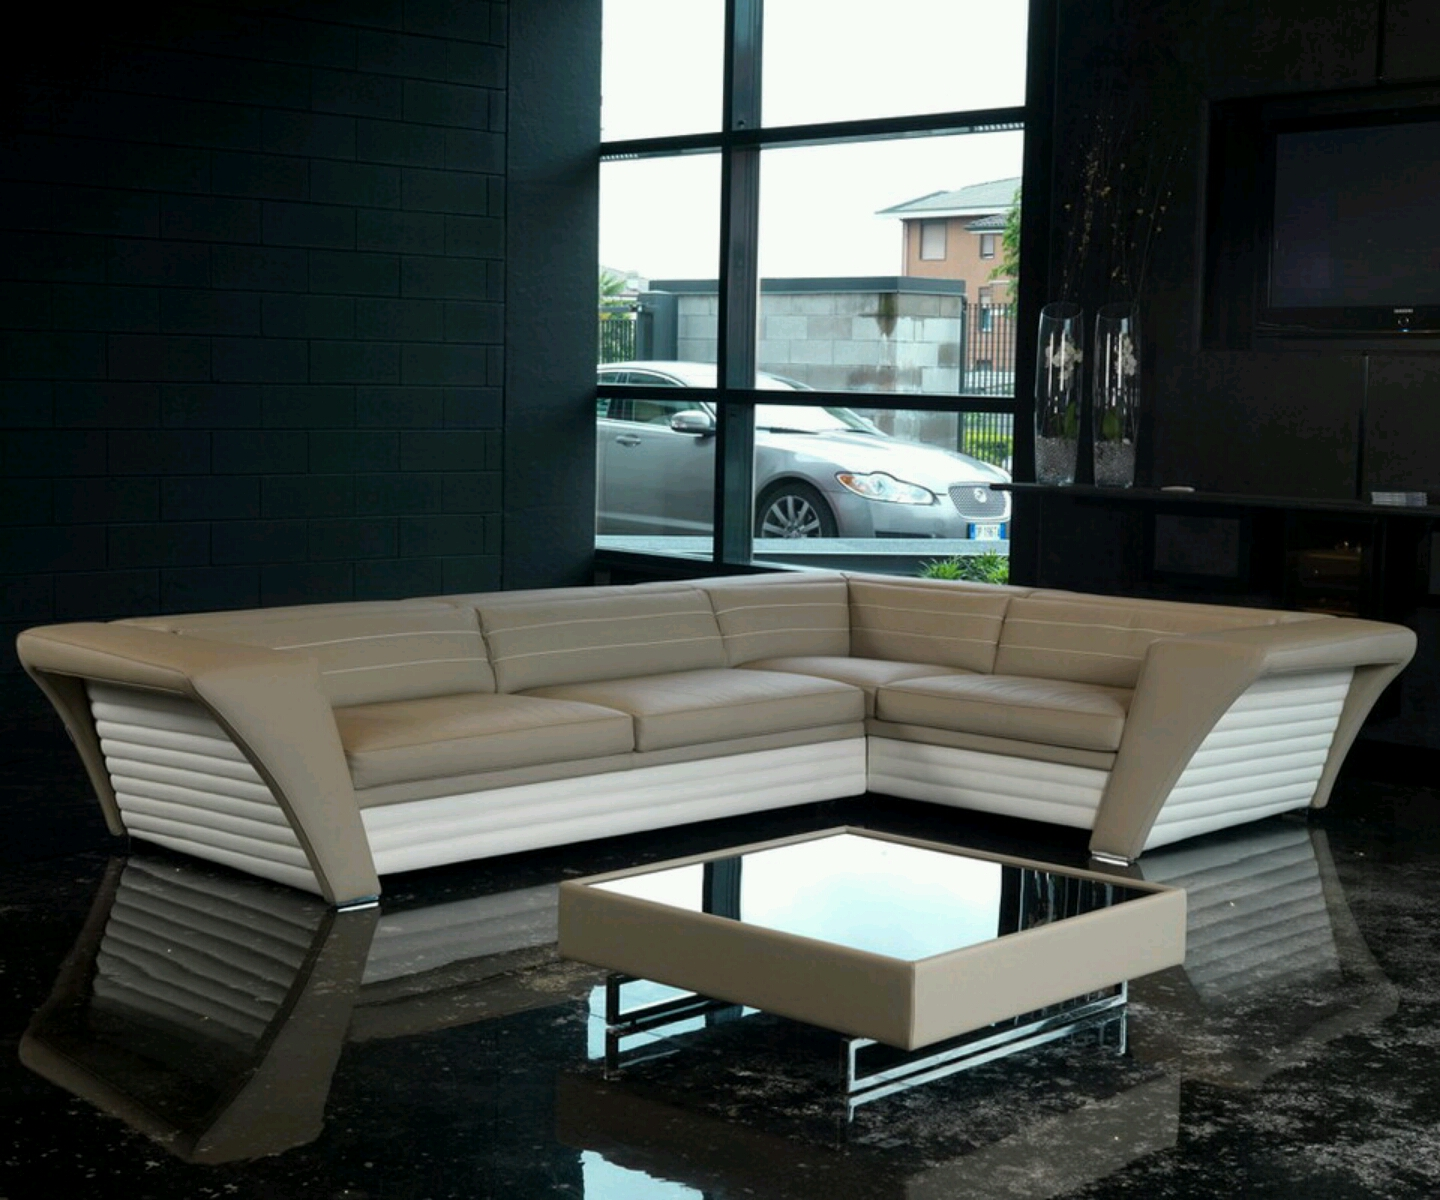 Modern sofa new designs an interior design - New furniture design ...